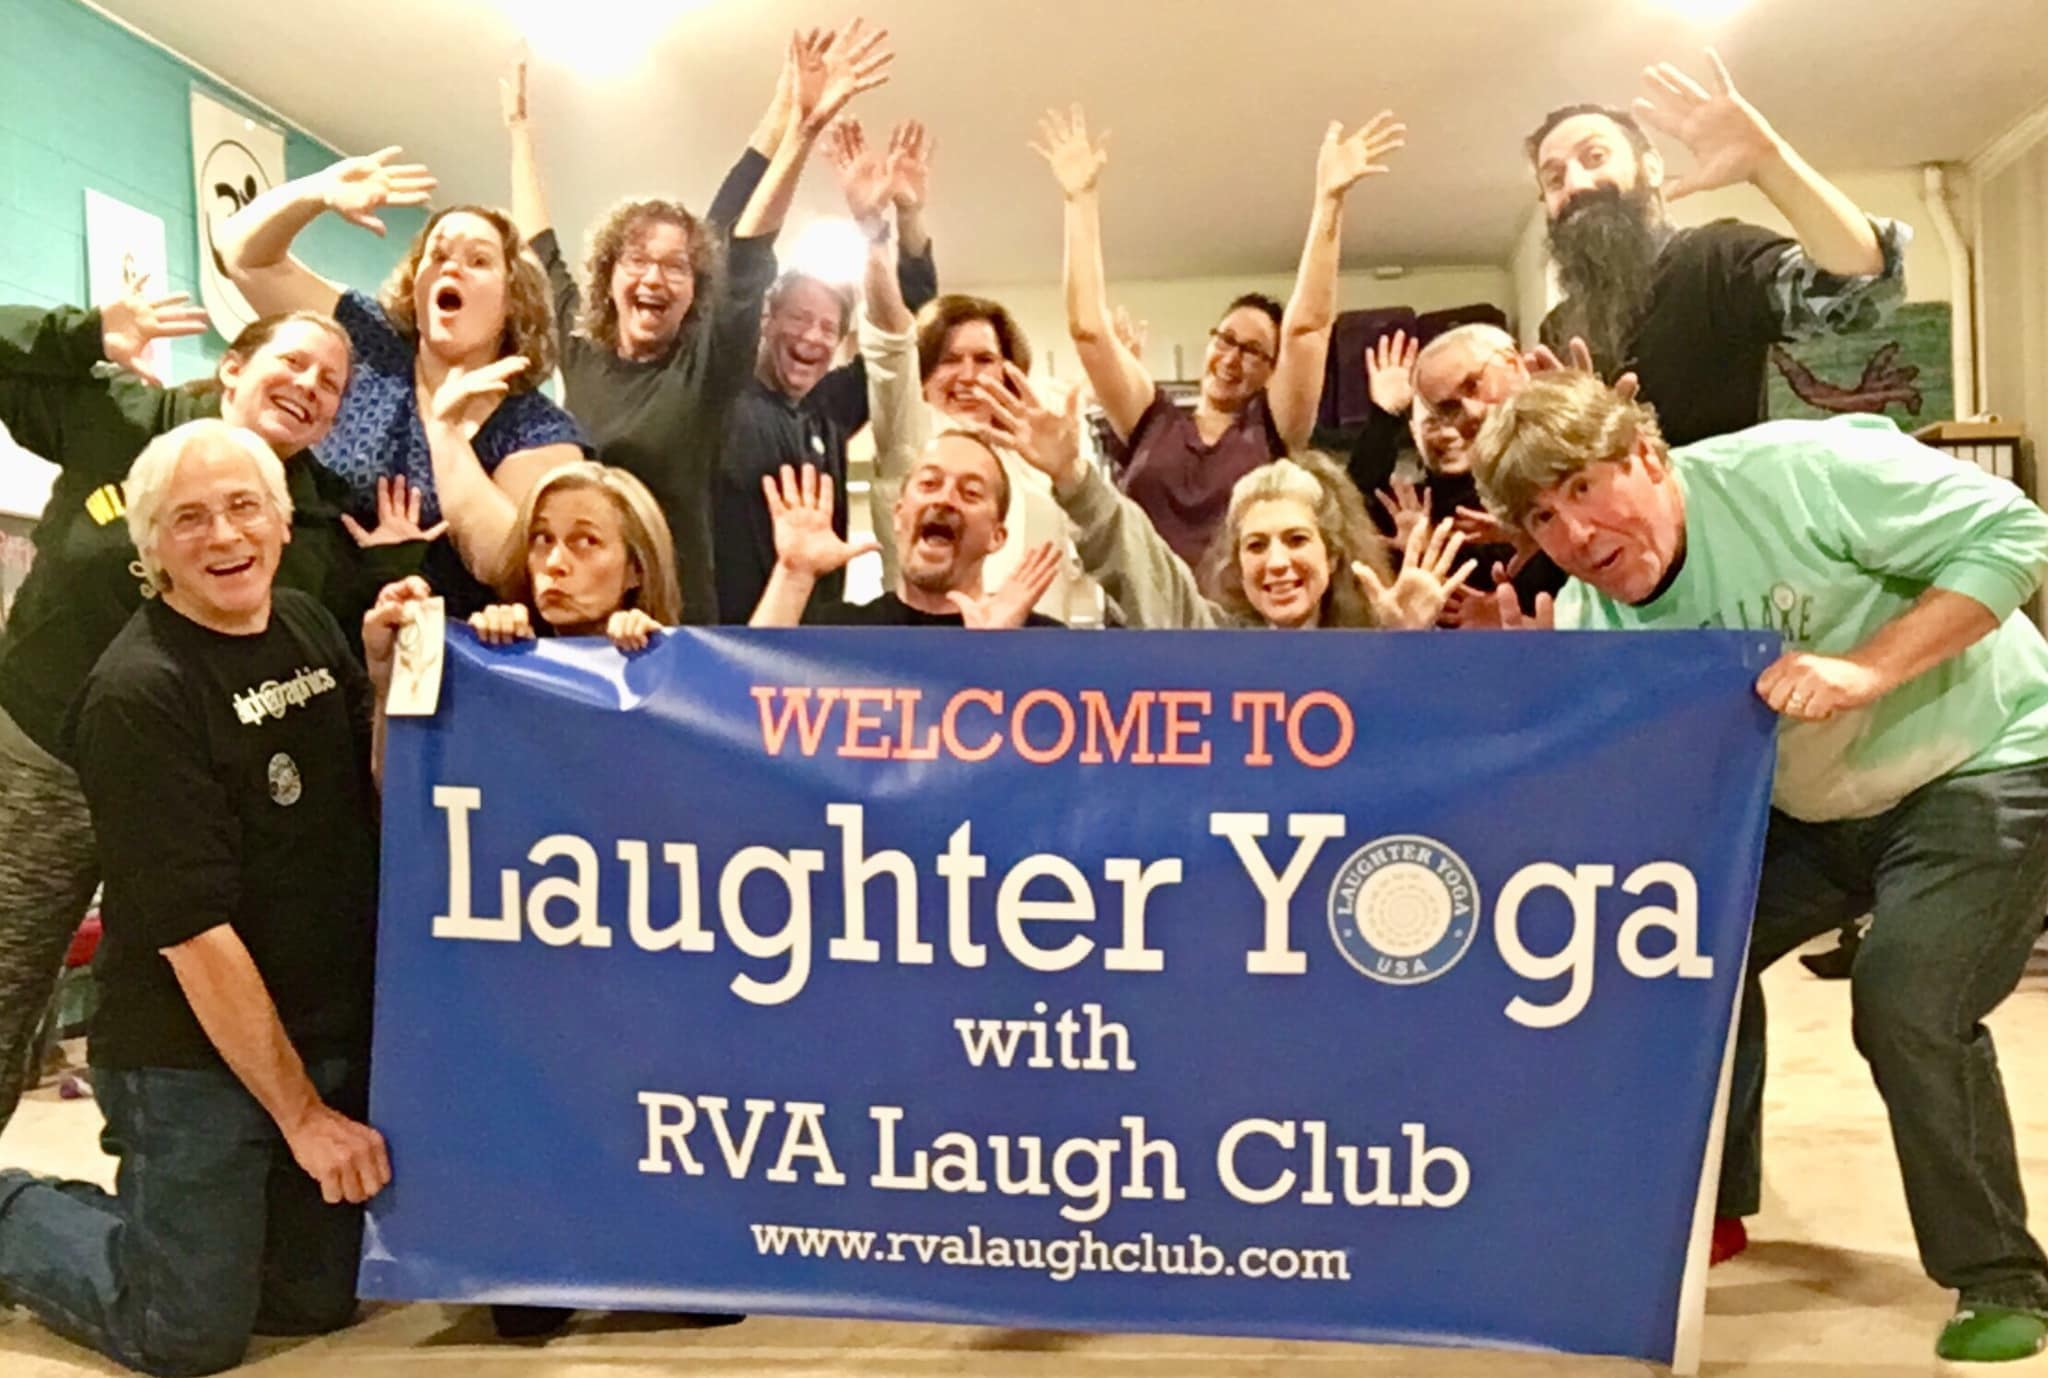 RVA-Laugh-Club-Richmond-Laughter-Yoga.jpg